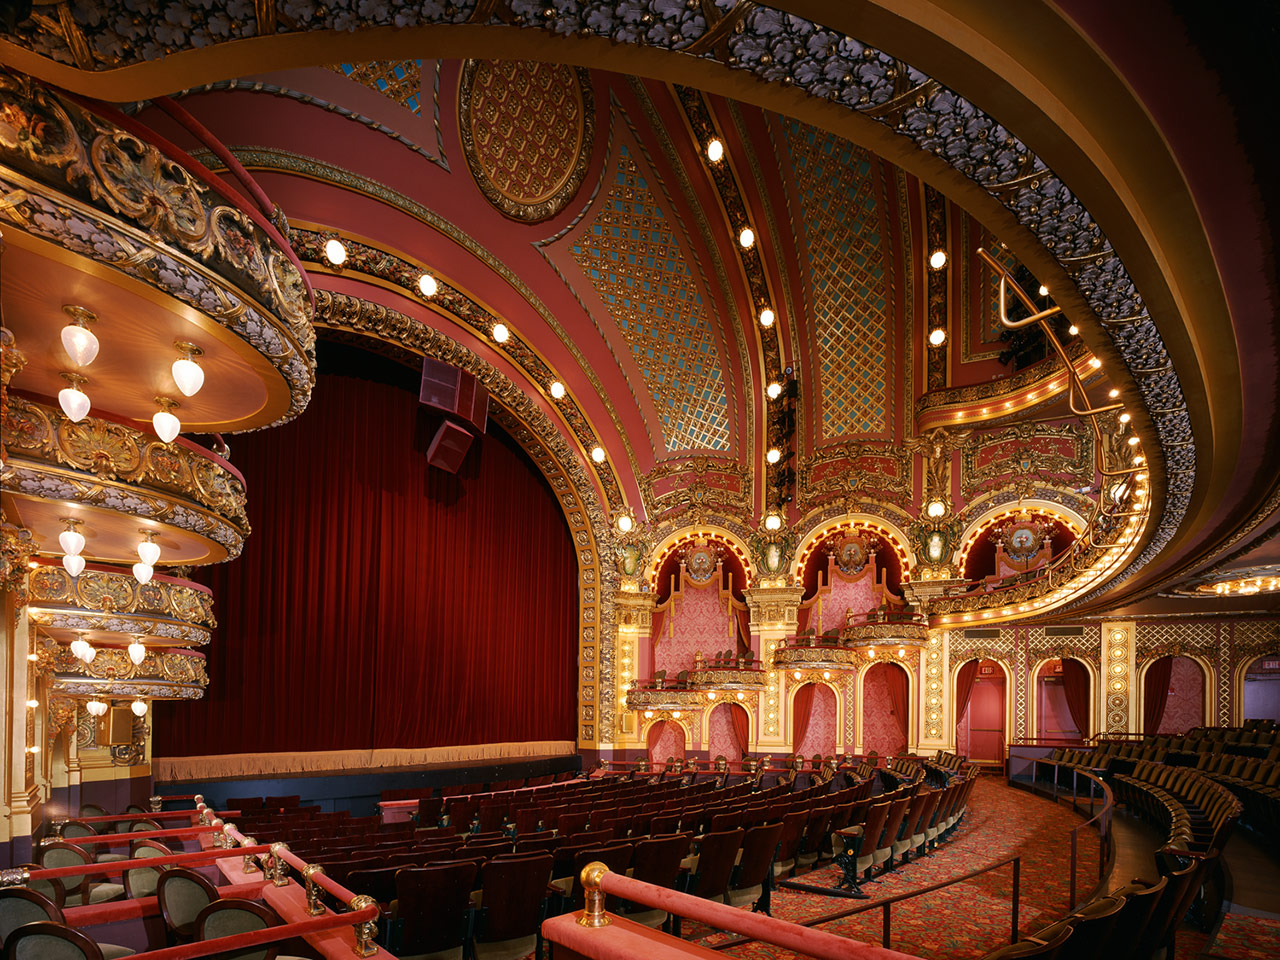 cutler majestic theatre boston - daydreamer - خیالباف